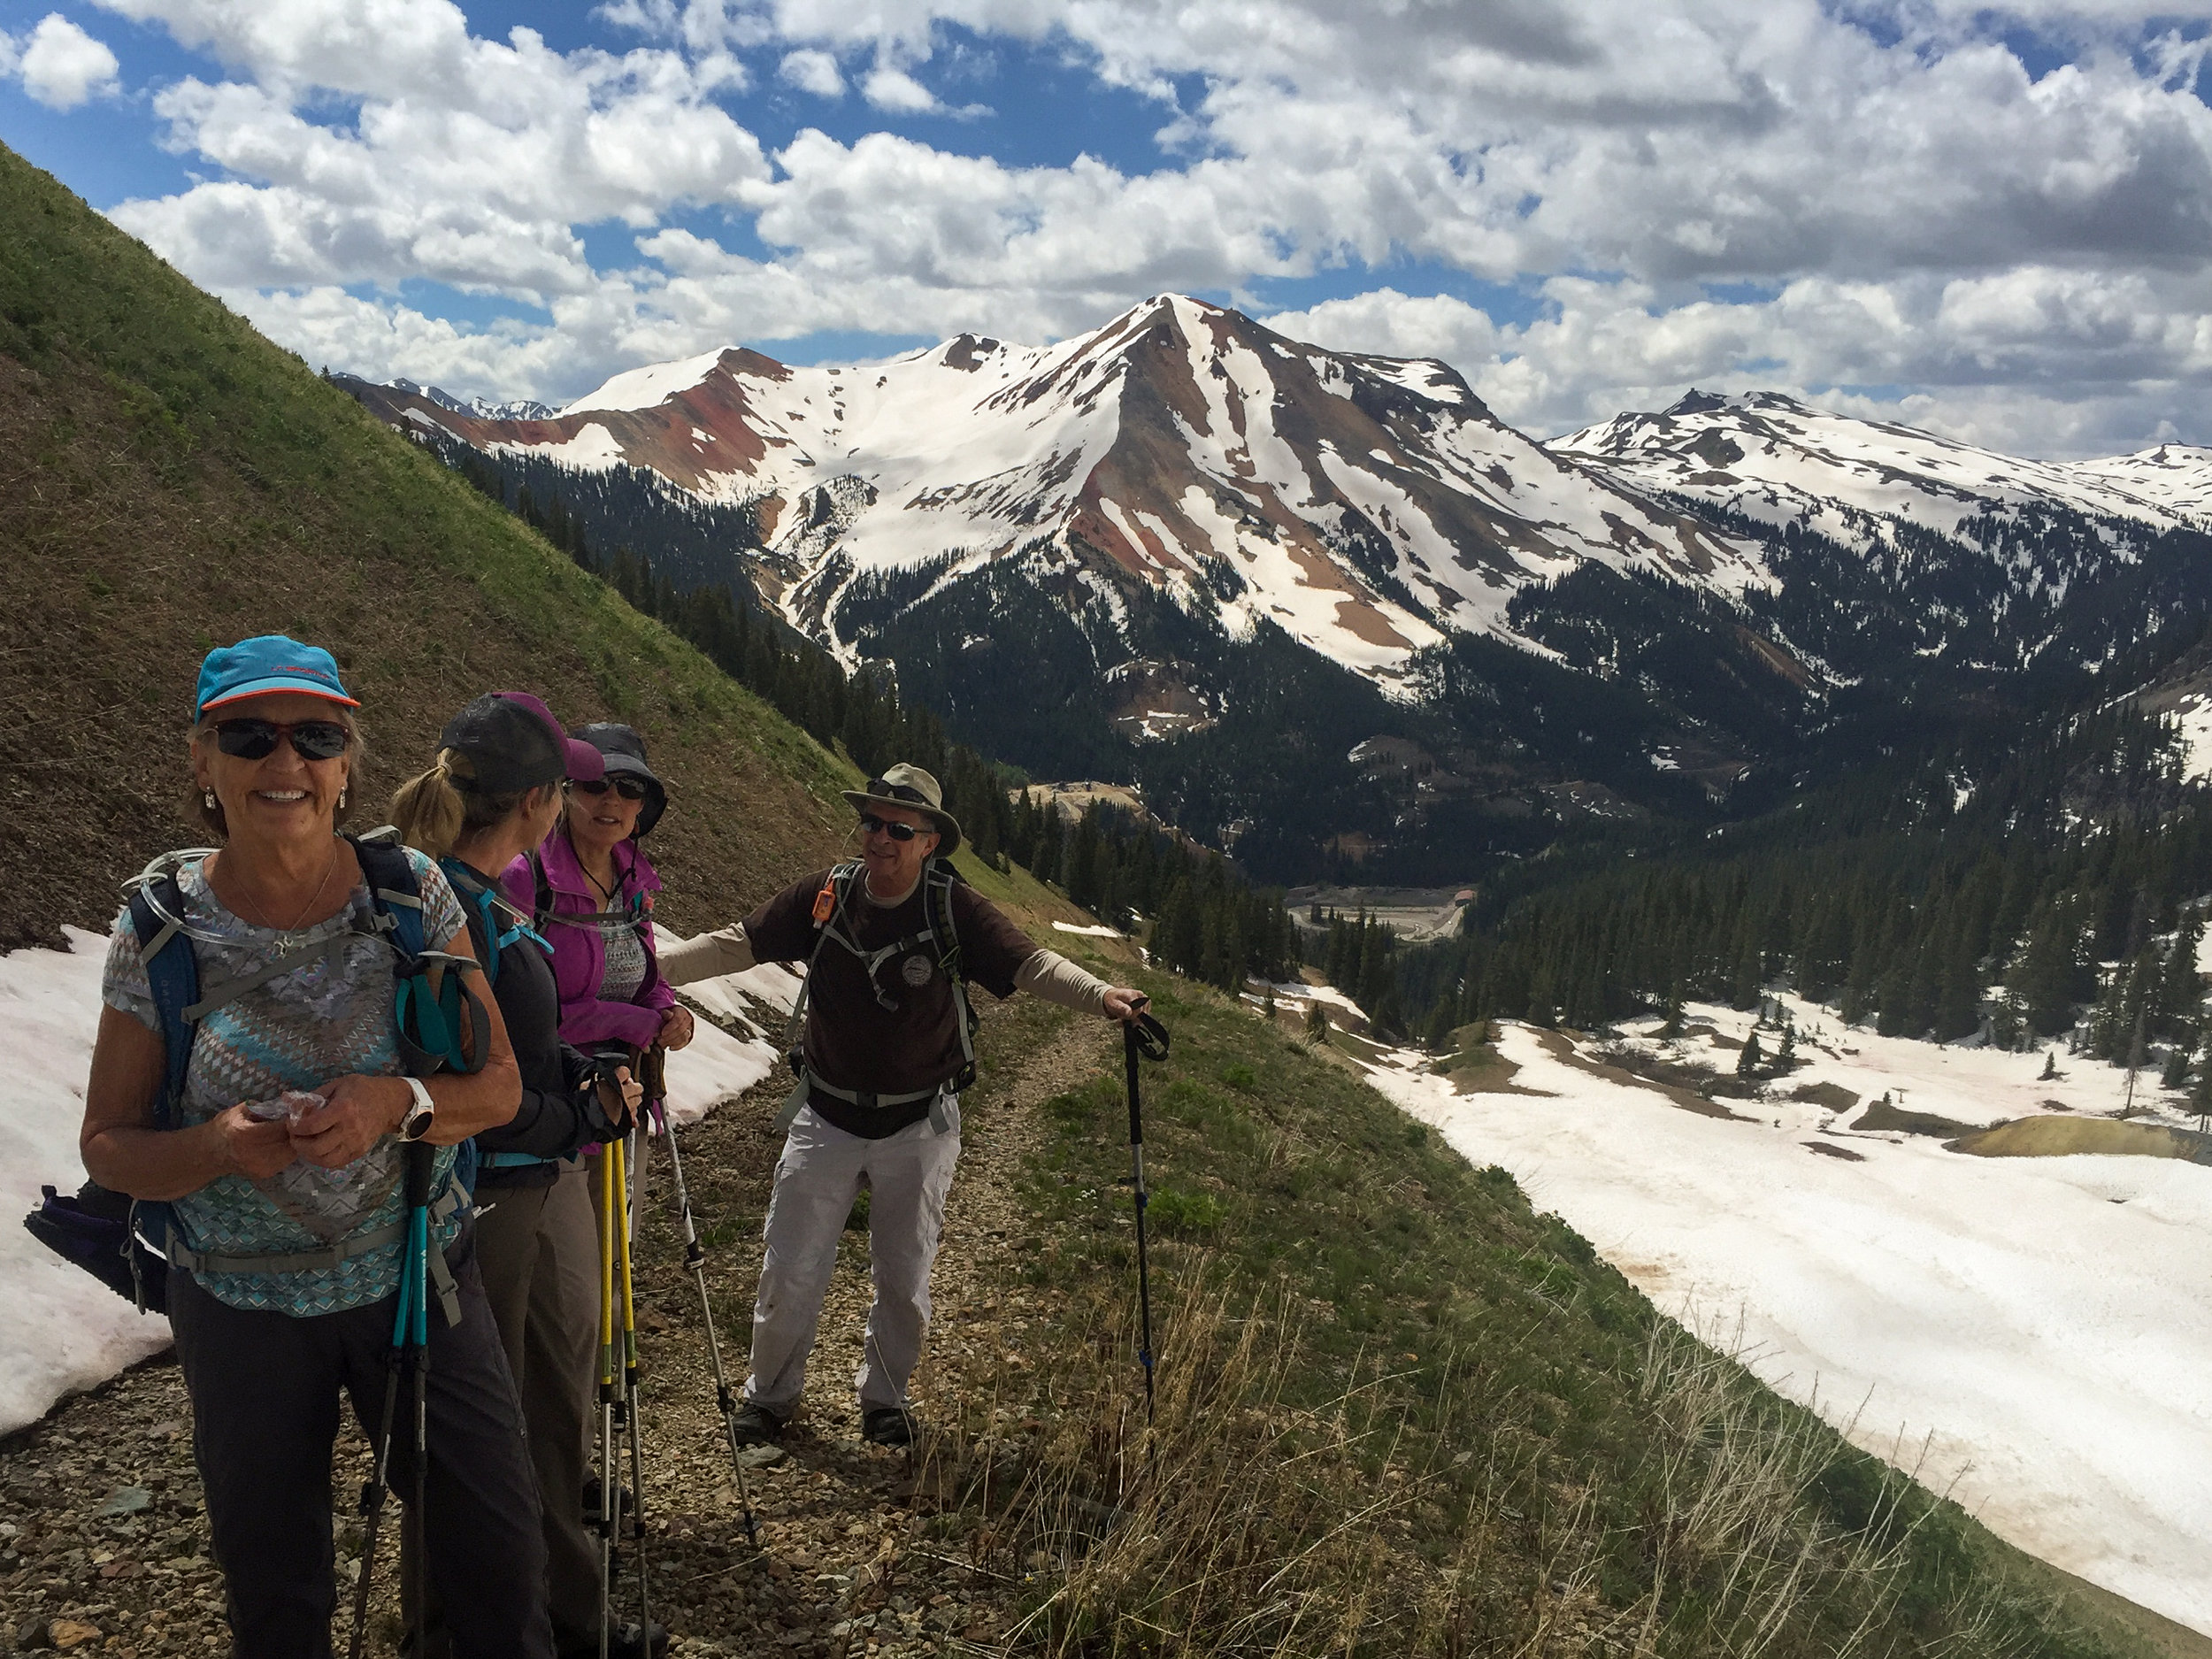 Team Everest is back on the dry trail